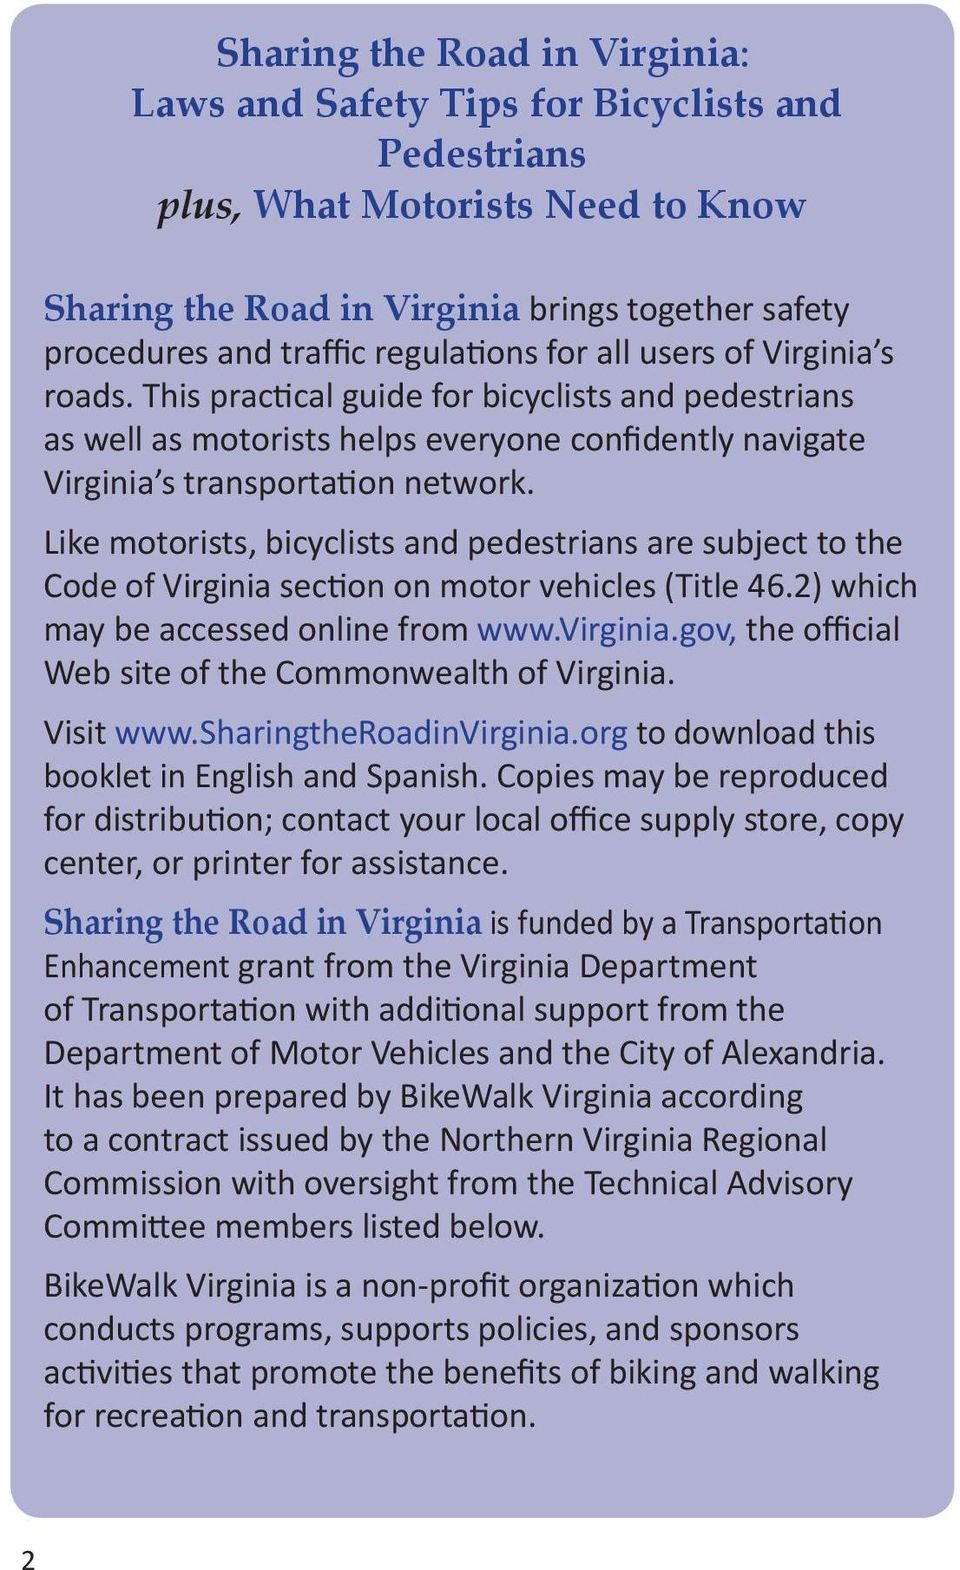 Like motorists, bicyclists and pedestrians are subject to the Code of Virginia section on motor vehicles (Title 46.2) which may be accessed online from www.virginia.